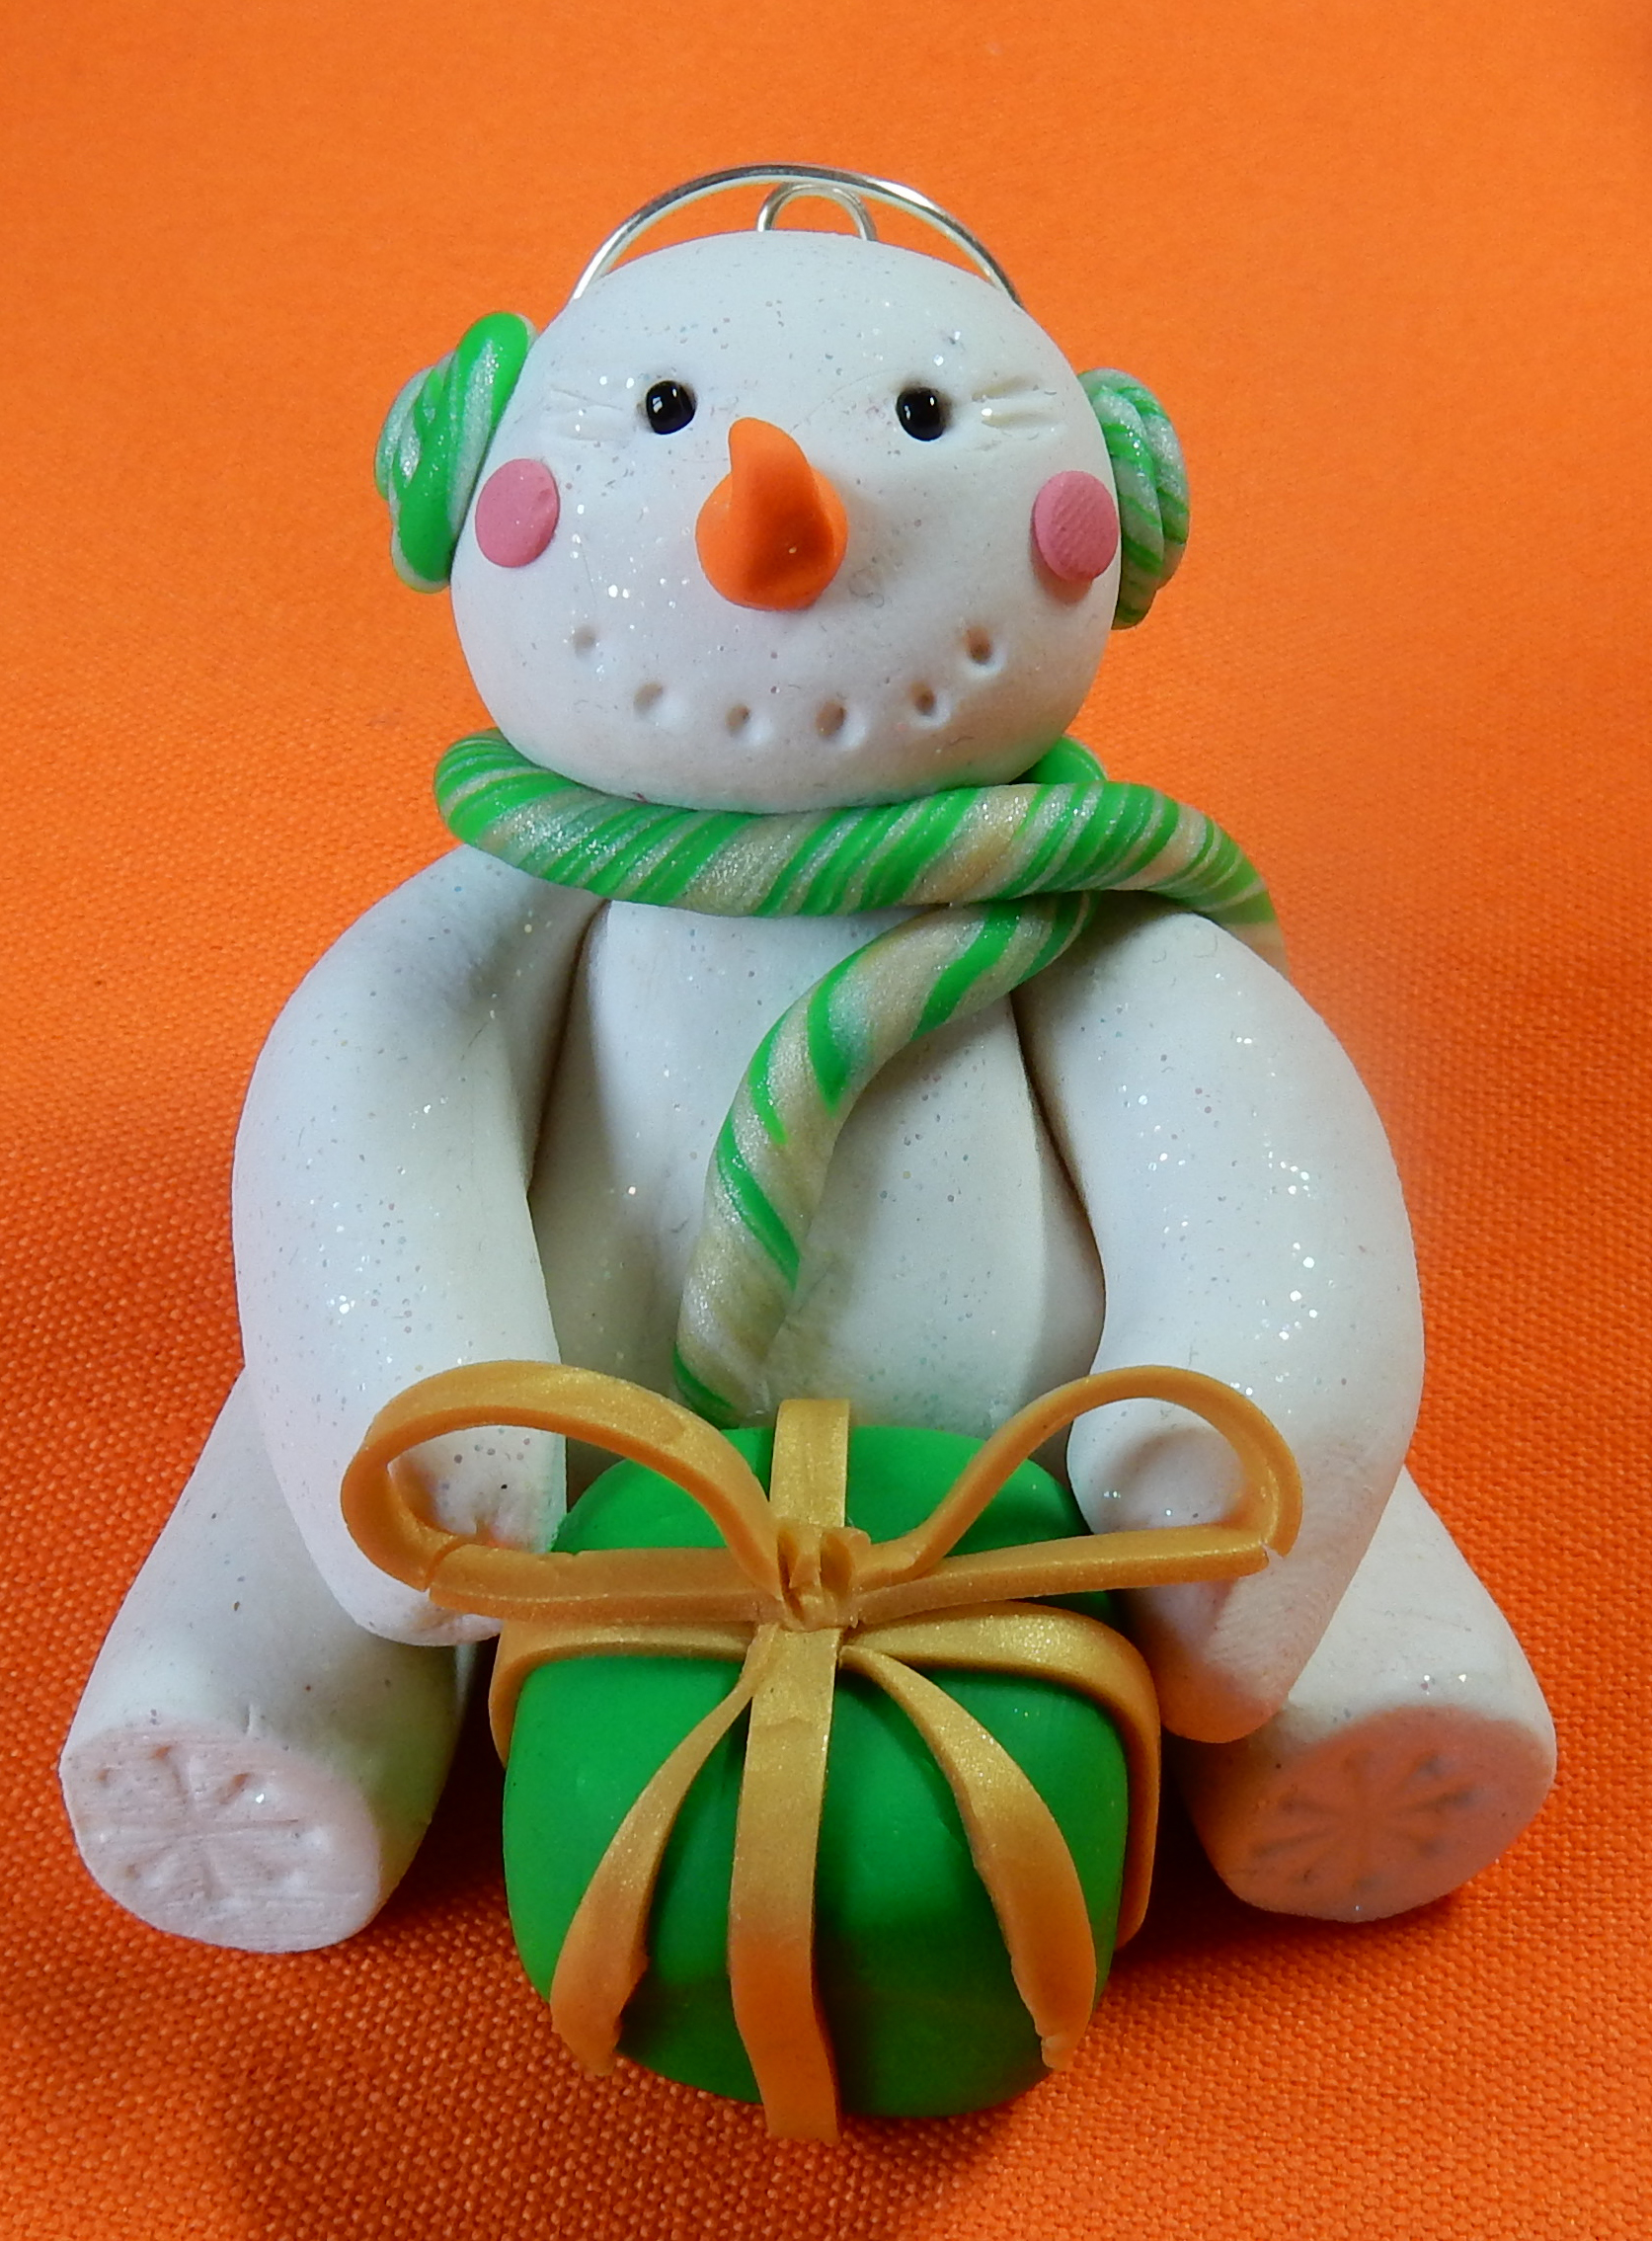 snowman with green present ear muffs and scarf